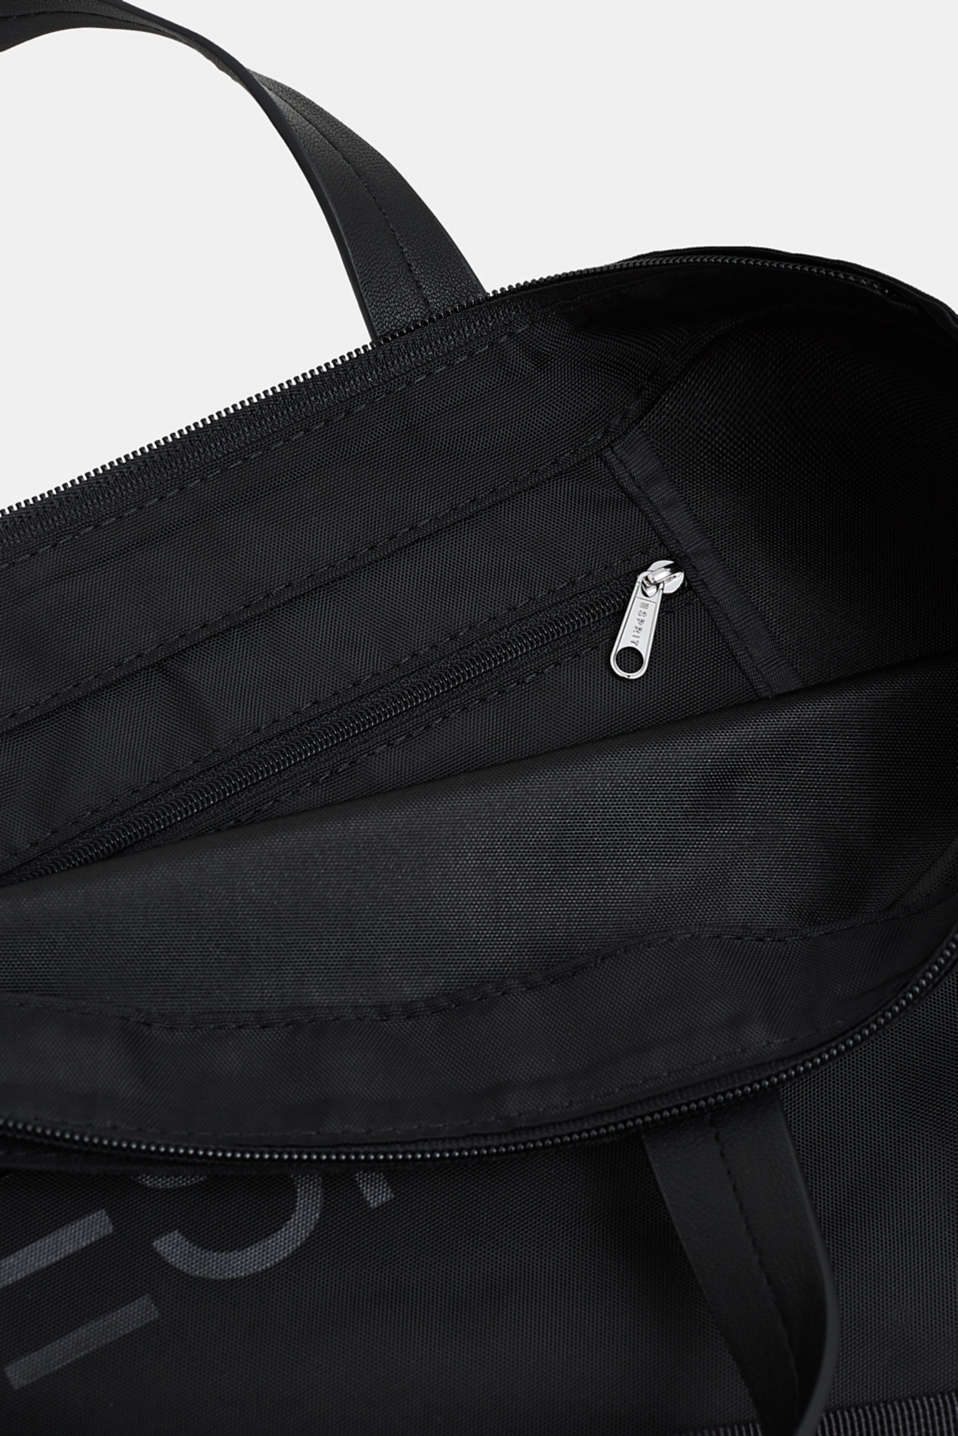 City bag with logo, in textured nylon, BLACK, detail image number 4